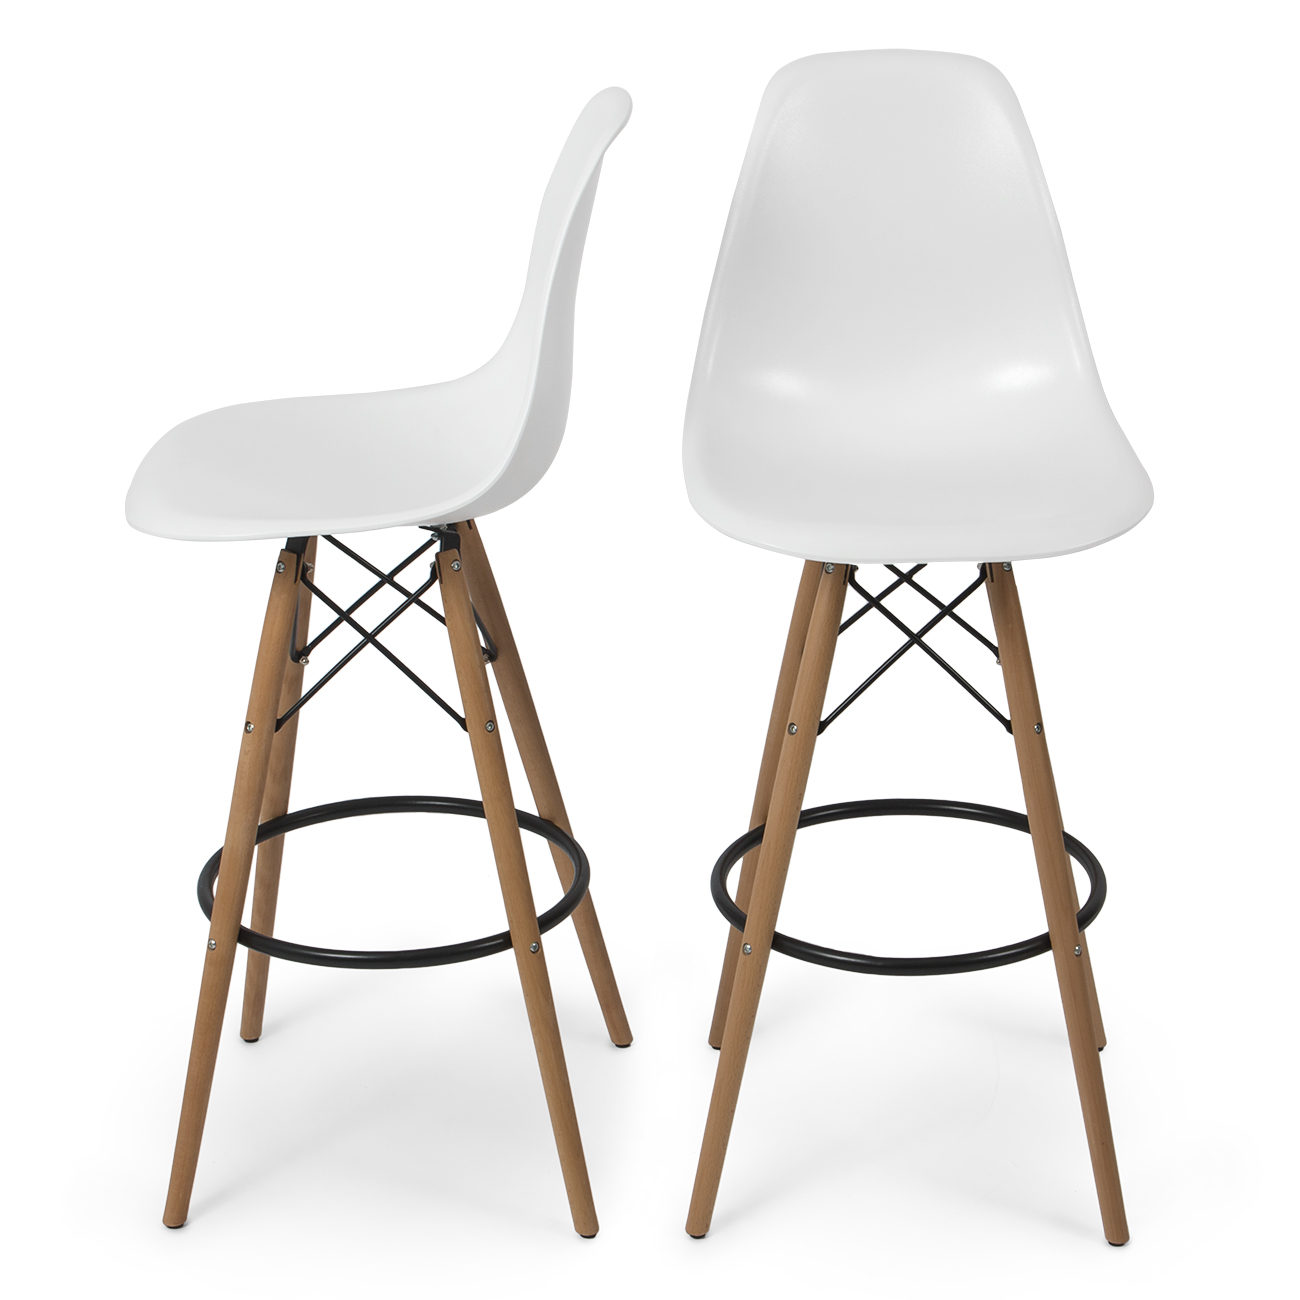 set of 2 modern eames style dsw bar stool side chair mid century wood leg white ebay. Black Bedroom Furniture Sets. Home Design Ideas